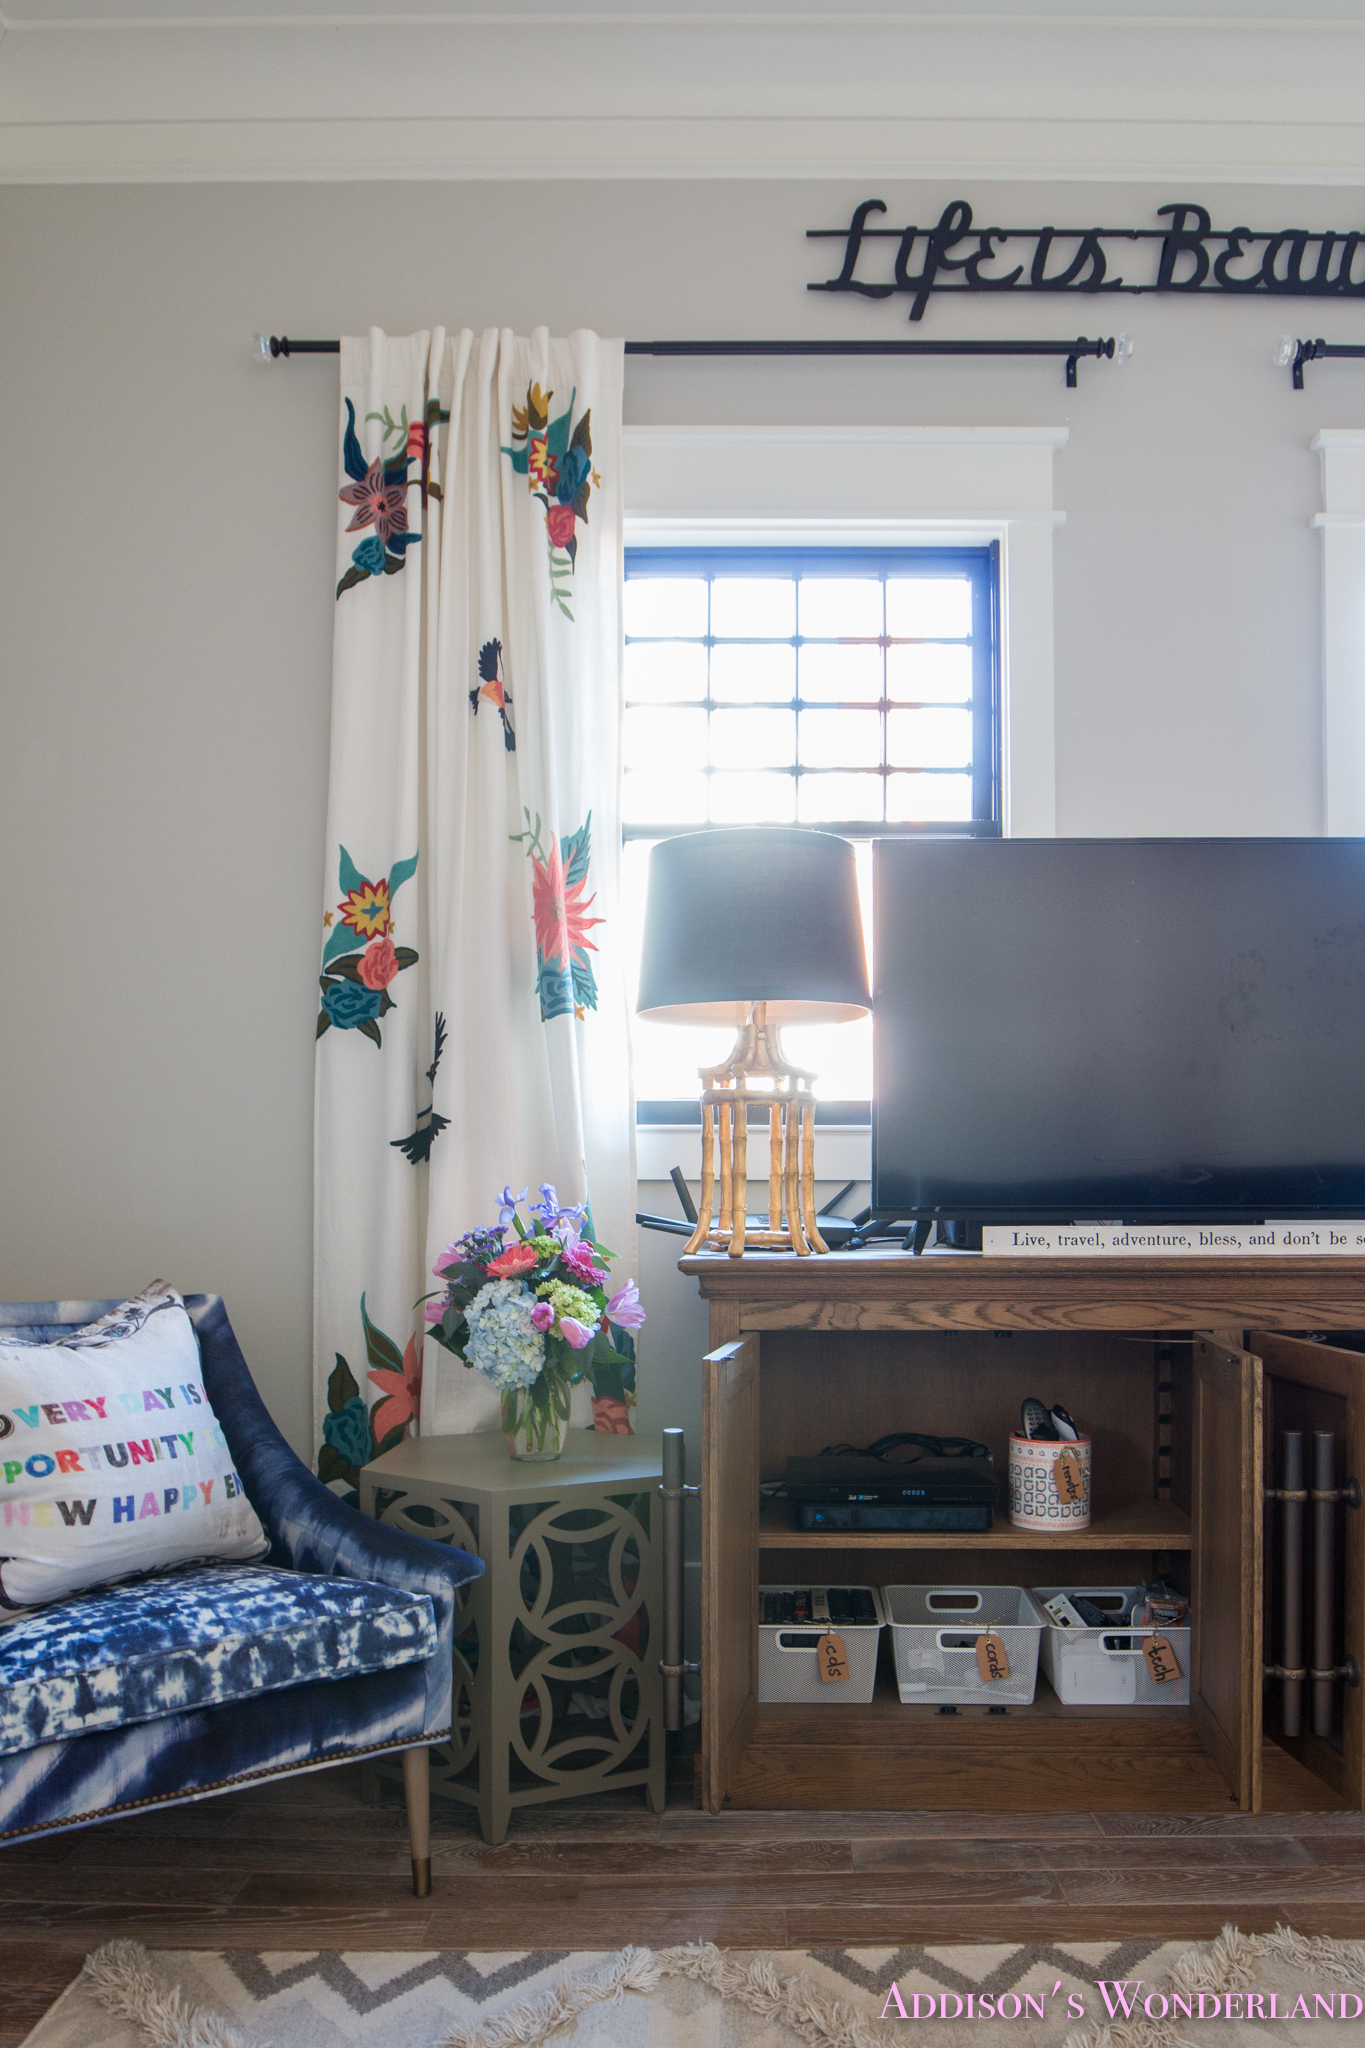 Our Cozy & Colorful Family Room TV Cabinet Organization!